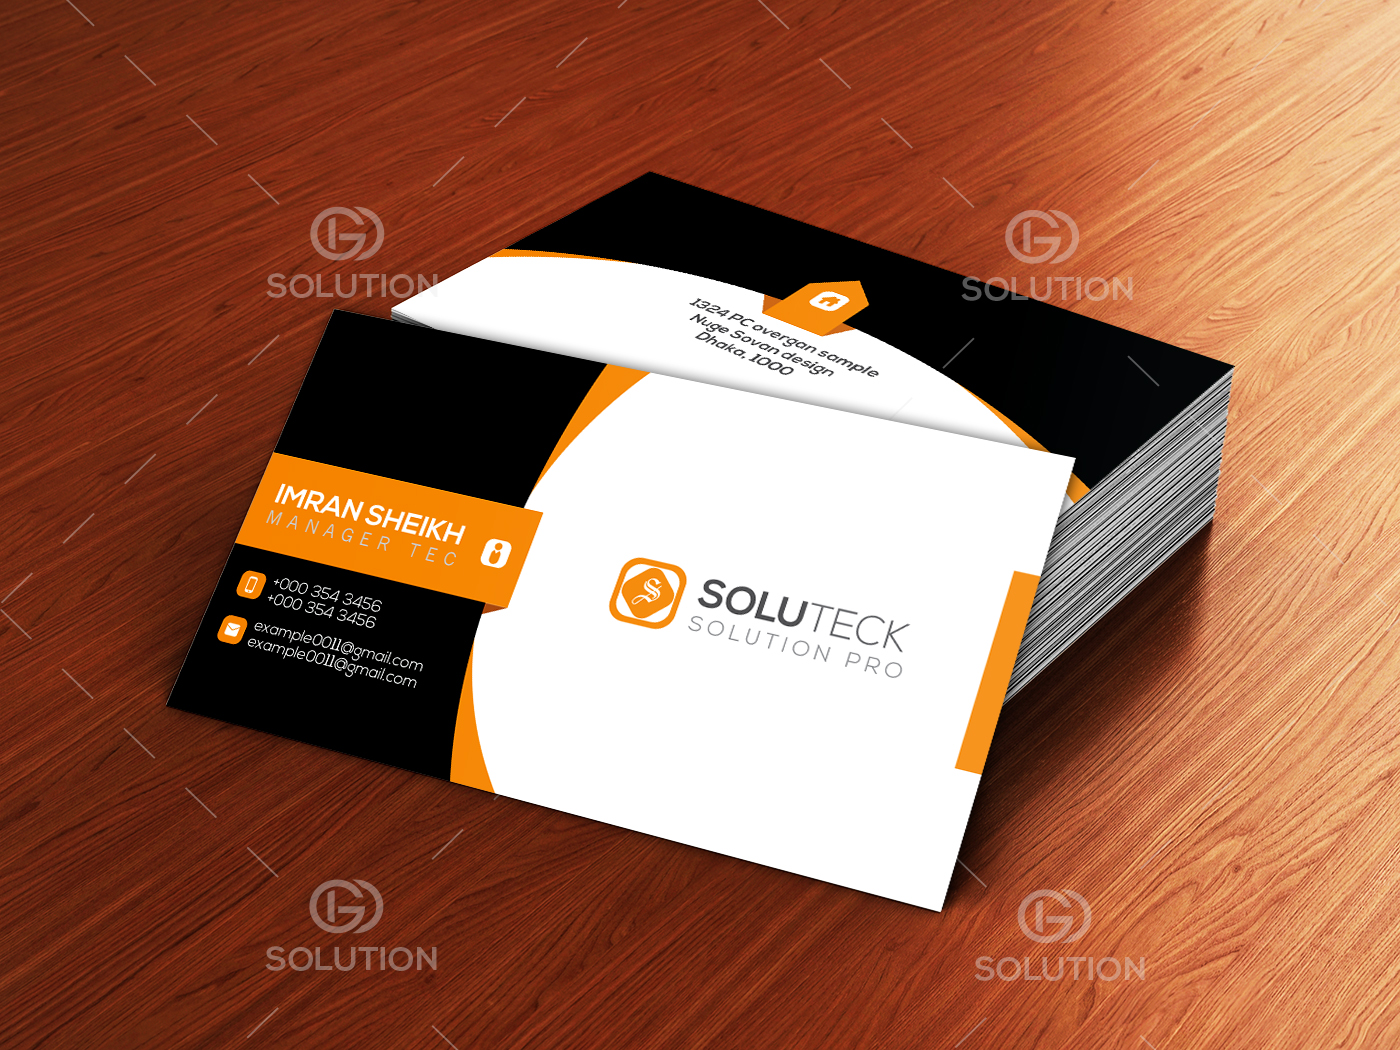 Business card pdf maker gallery card design and card template how to create business cards pdf choice image card design and create business card pdf file reheart Image collections